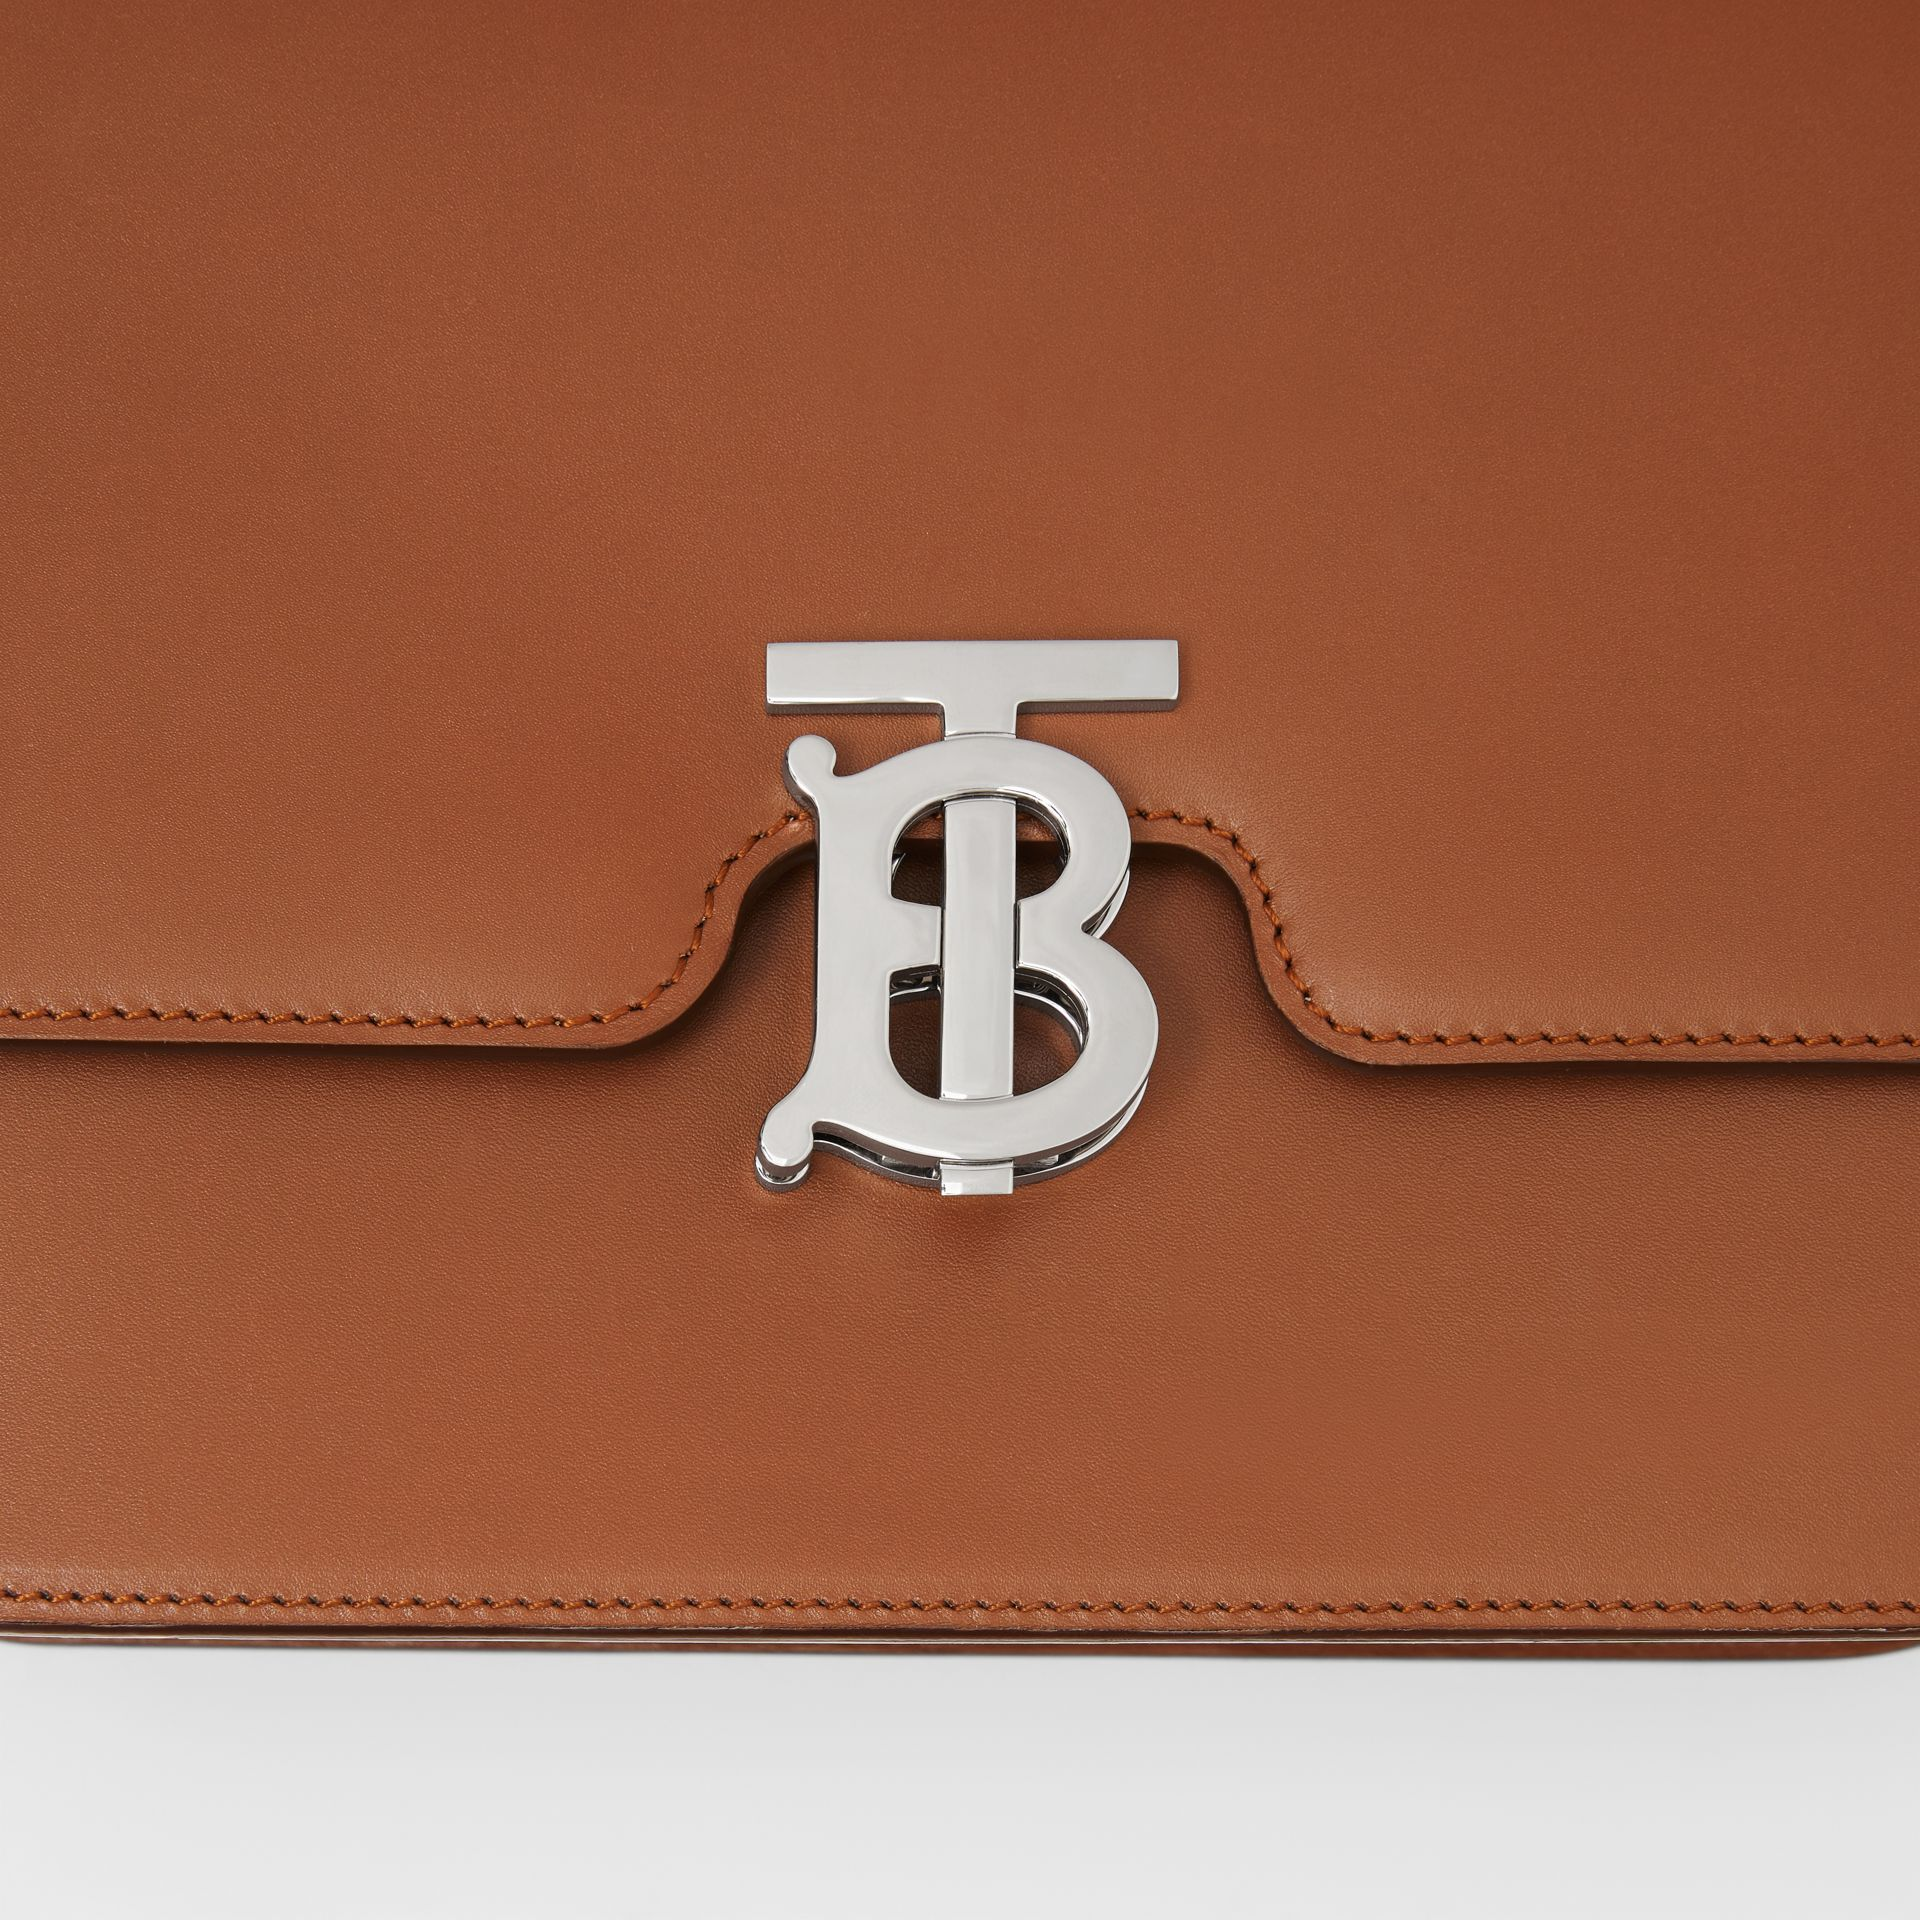 Medium Leather TB Bag in Malt Brown - Women | Burberry Australia - gallery image 1